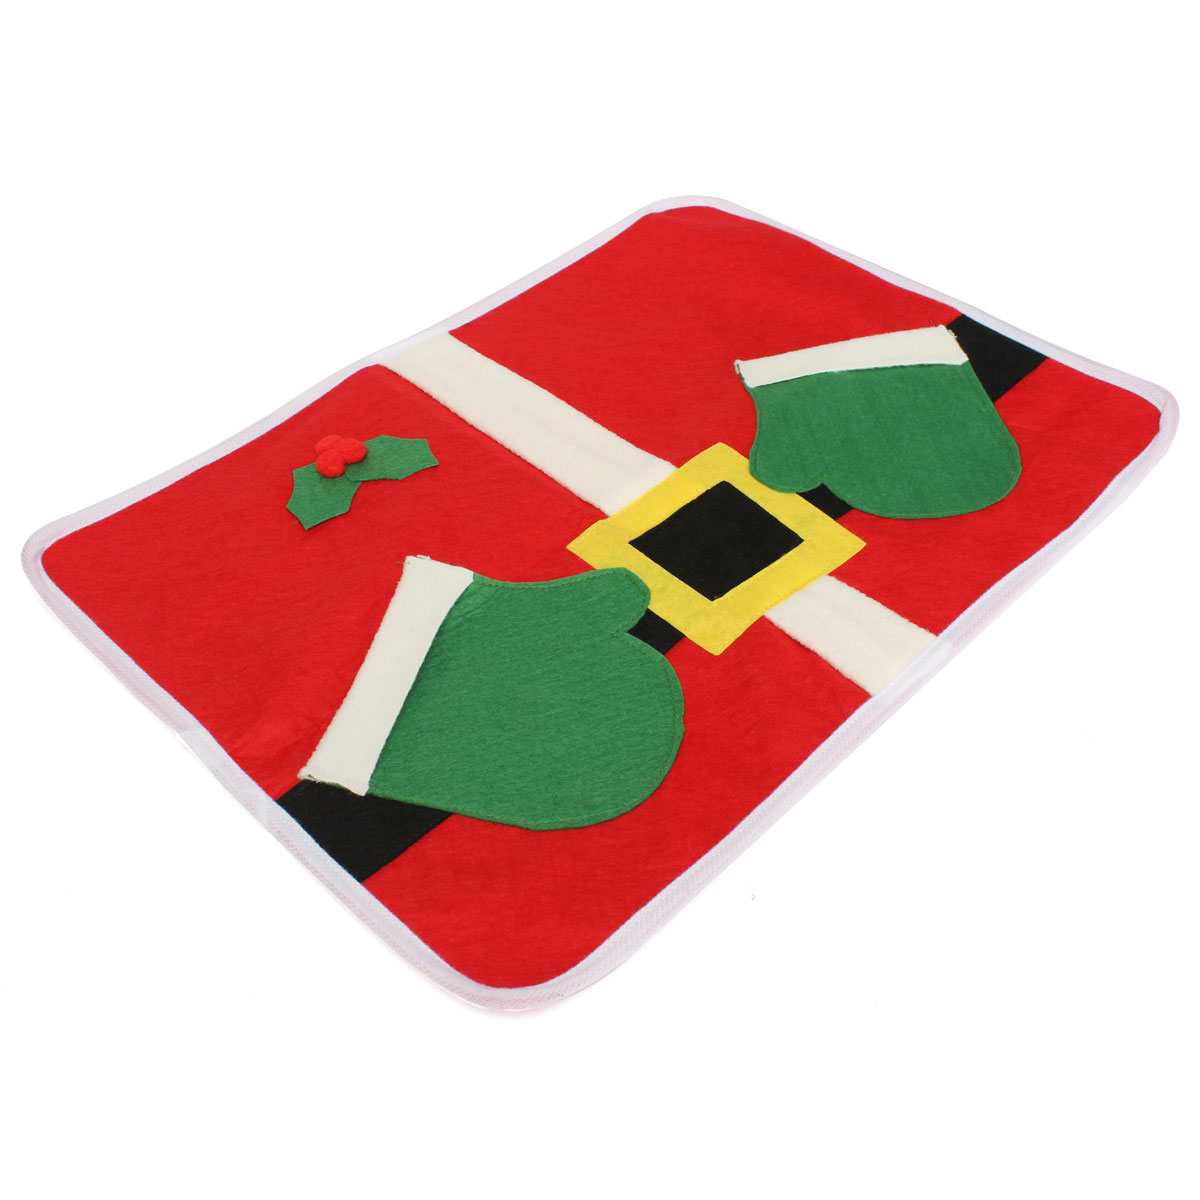 Chritmas Xmas Santa Clua Table Placemat Cover Tableware Mat